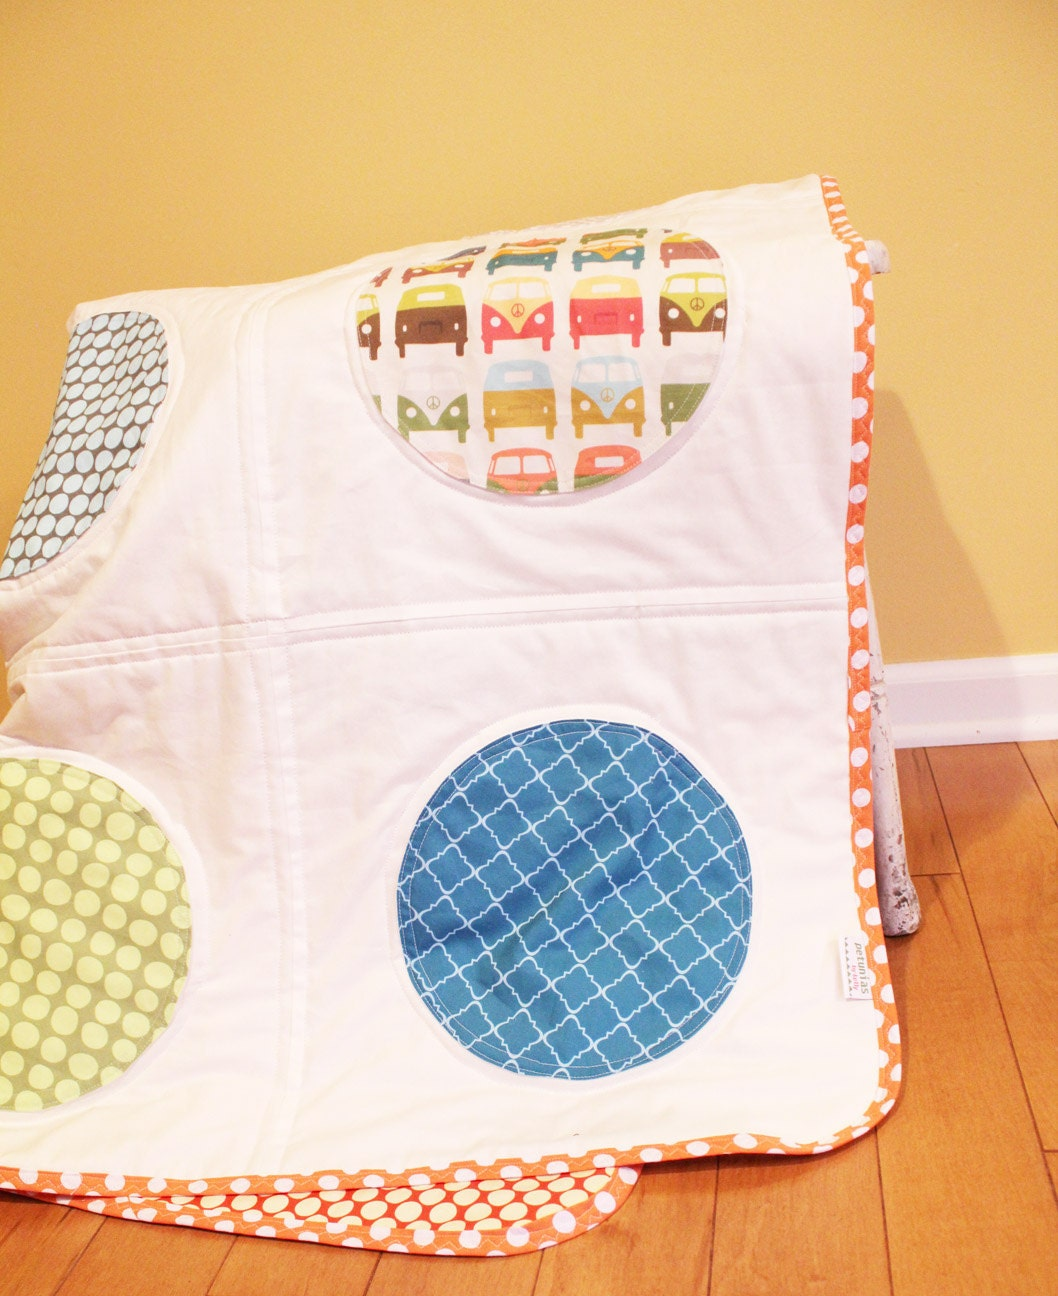 Dot quilt by petunias vw red turquoise white baby by petunias - Vintage antique baby room ideas timeless charm appeal ...